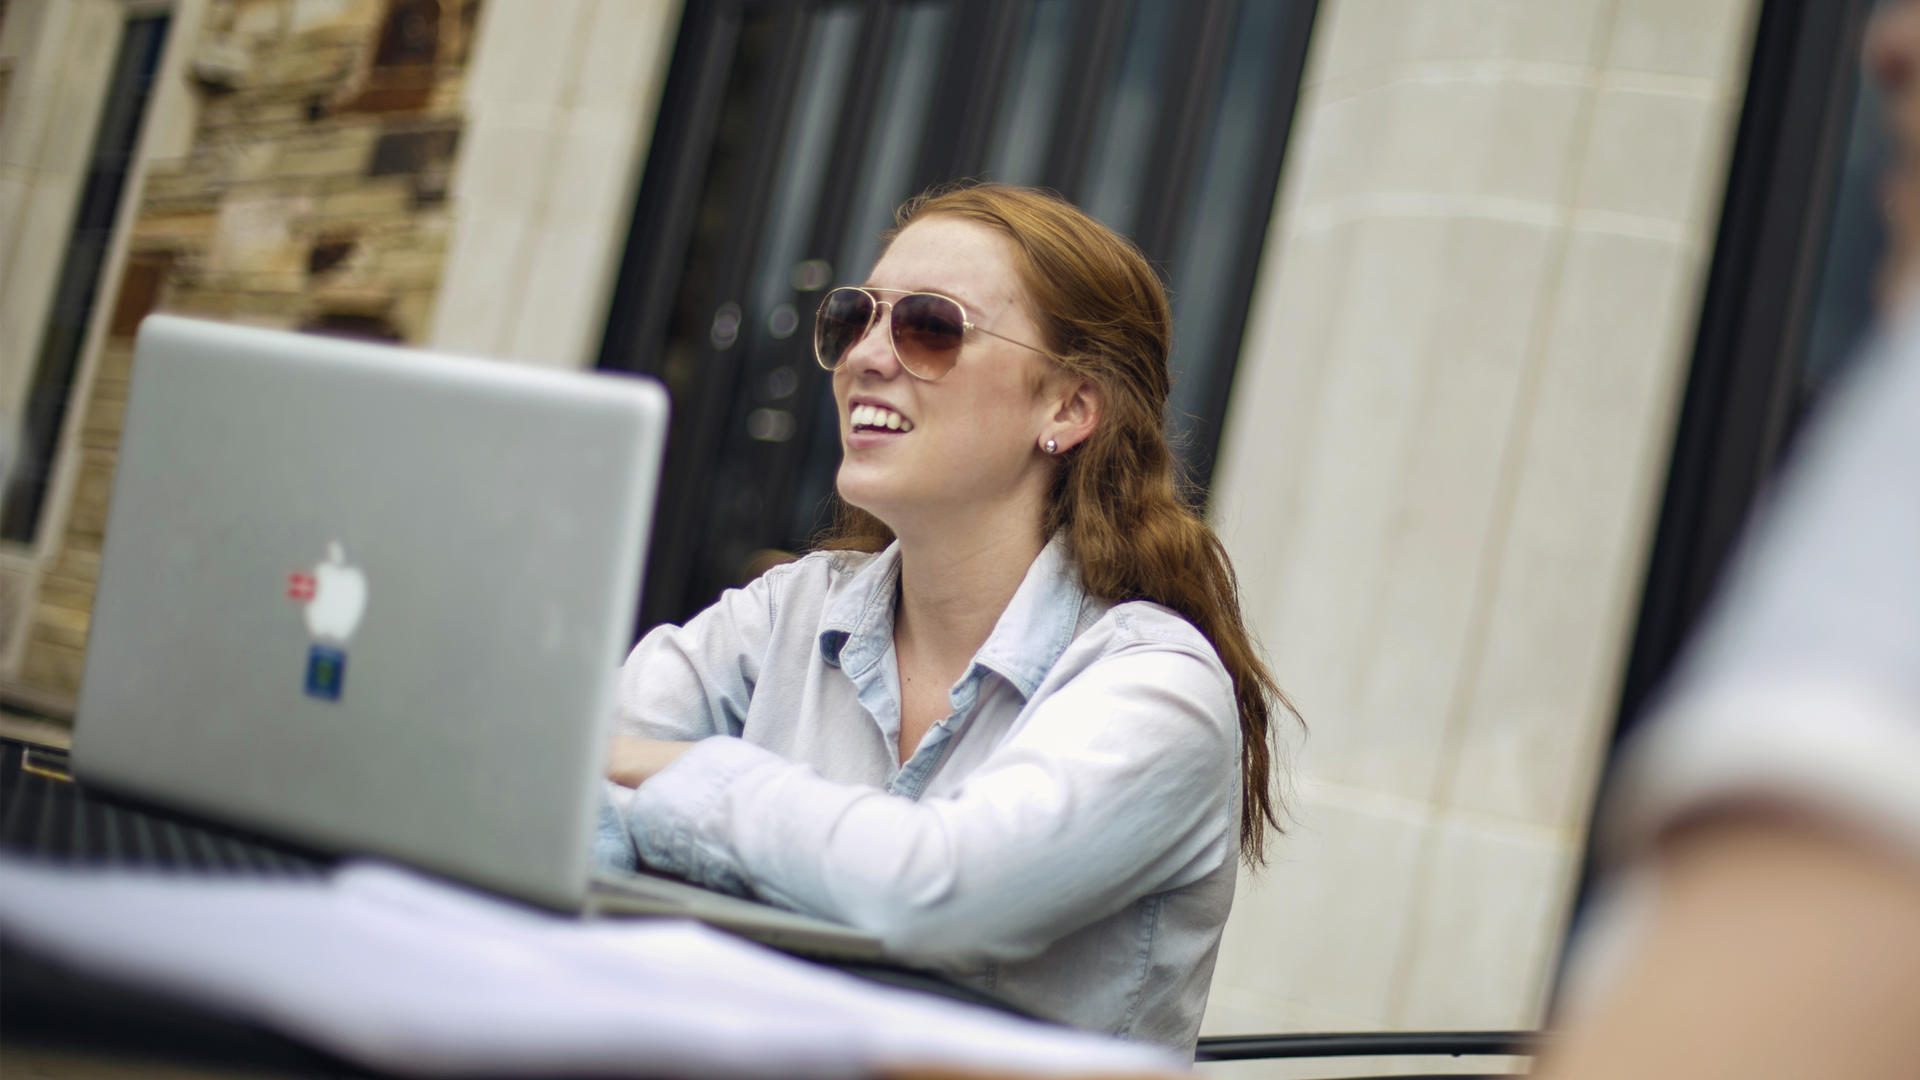 A woman wearing sunglasses sits on the Lynx Lair patio at a table with a laptop and papers